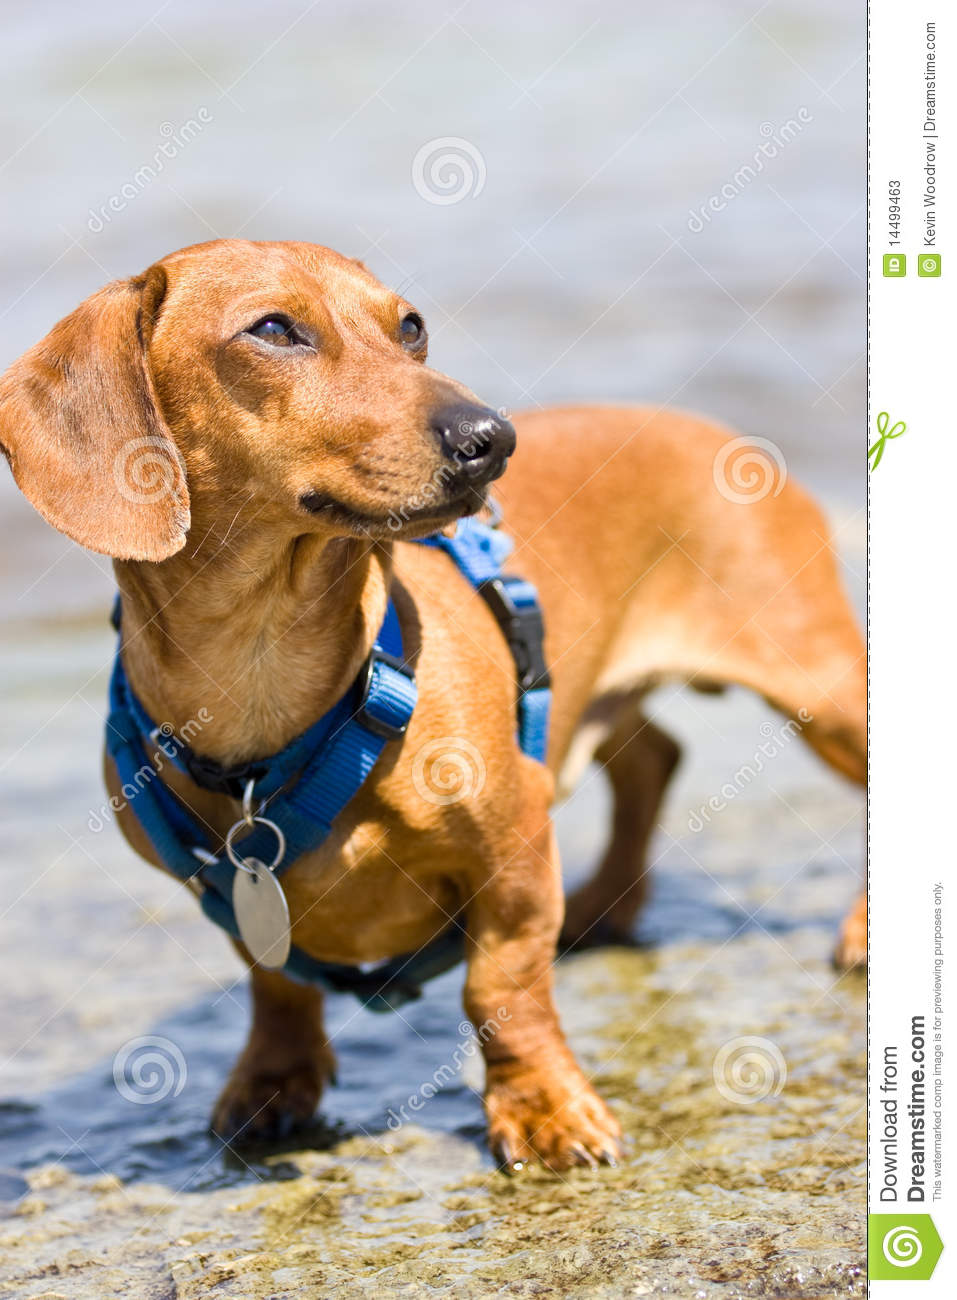 Miniature Dachshund With Blue Harness Stock Image Image